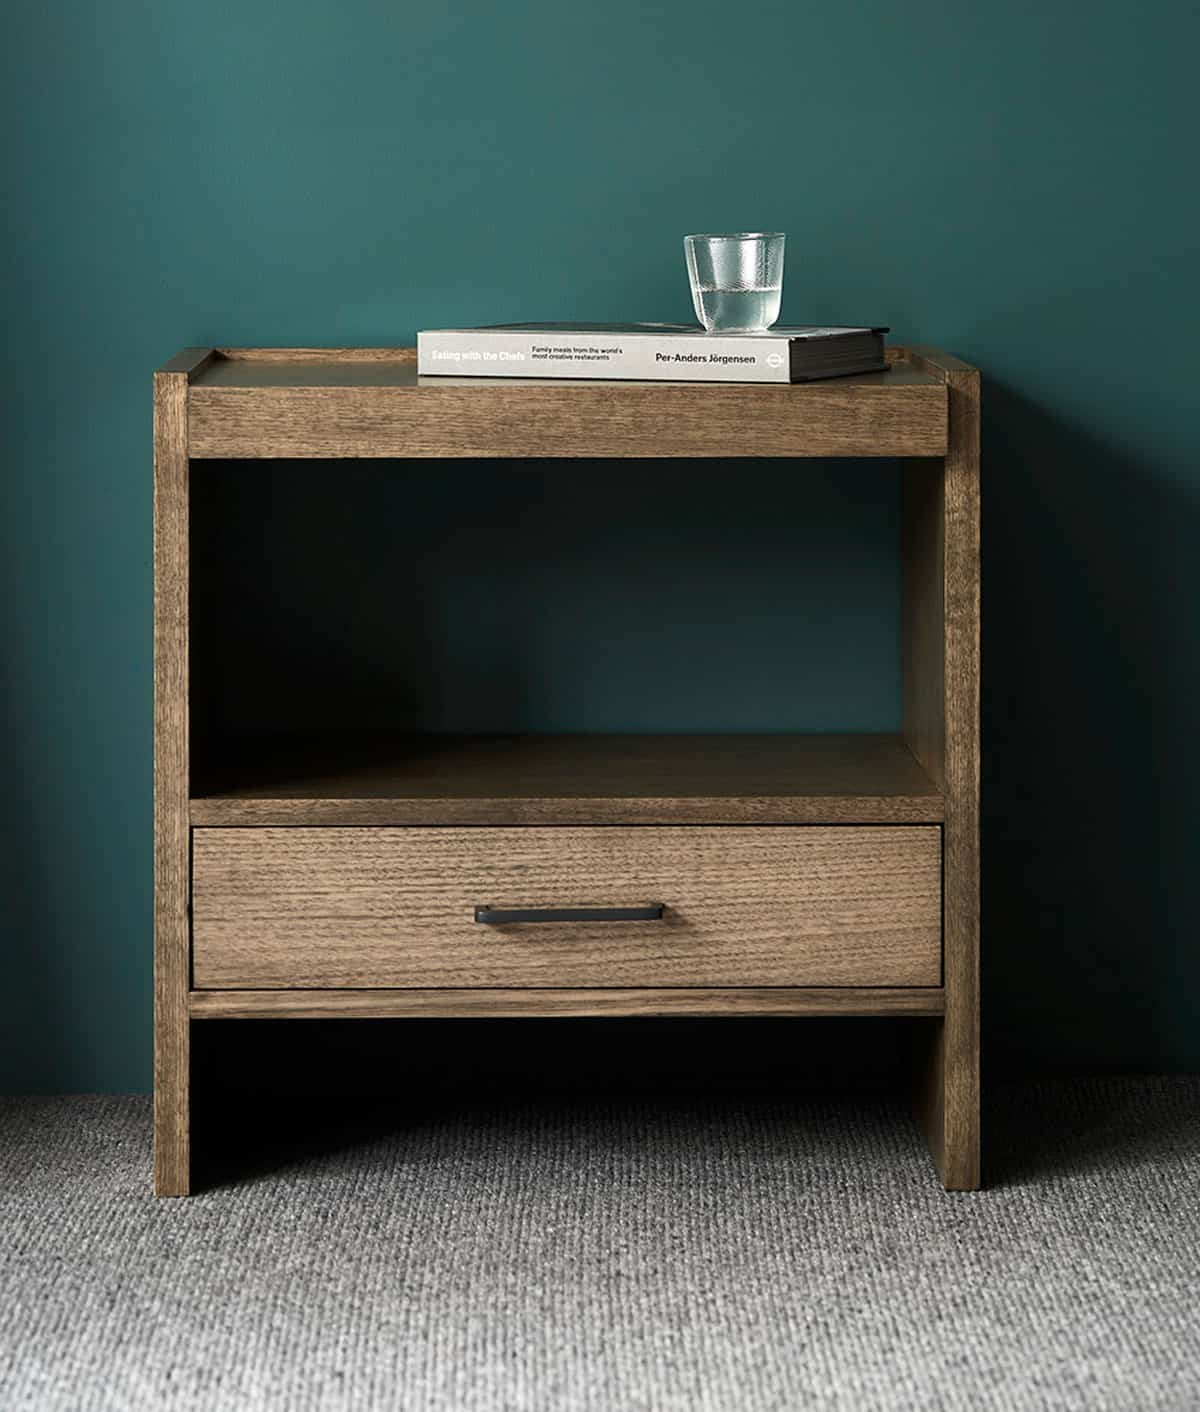 Heatherly Design Hendrik Side Table crafted from Tasmanian Oak